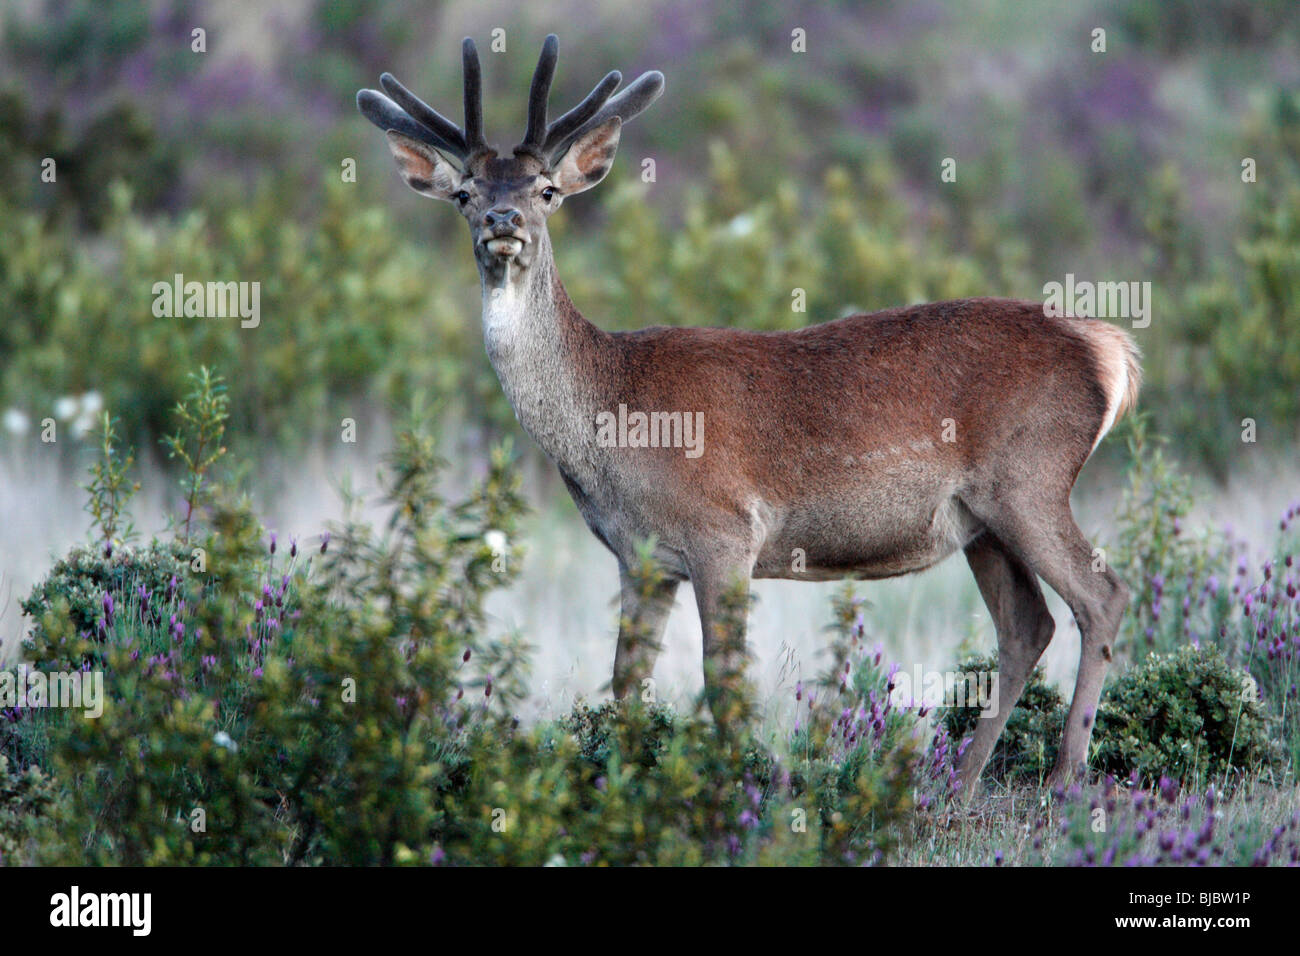 Reed Deer (Cervus elaphus) - young stag with new developing antlers, covered in velvet, region of Alentejo, Portugal - Stock Image